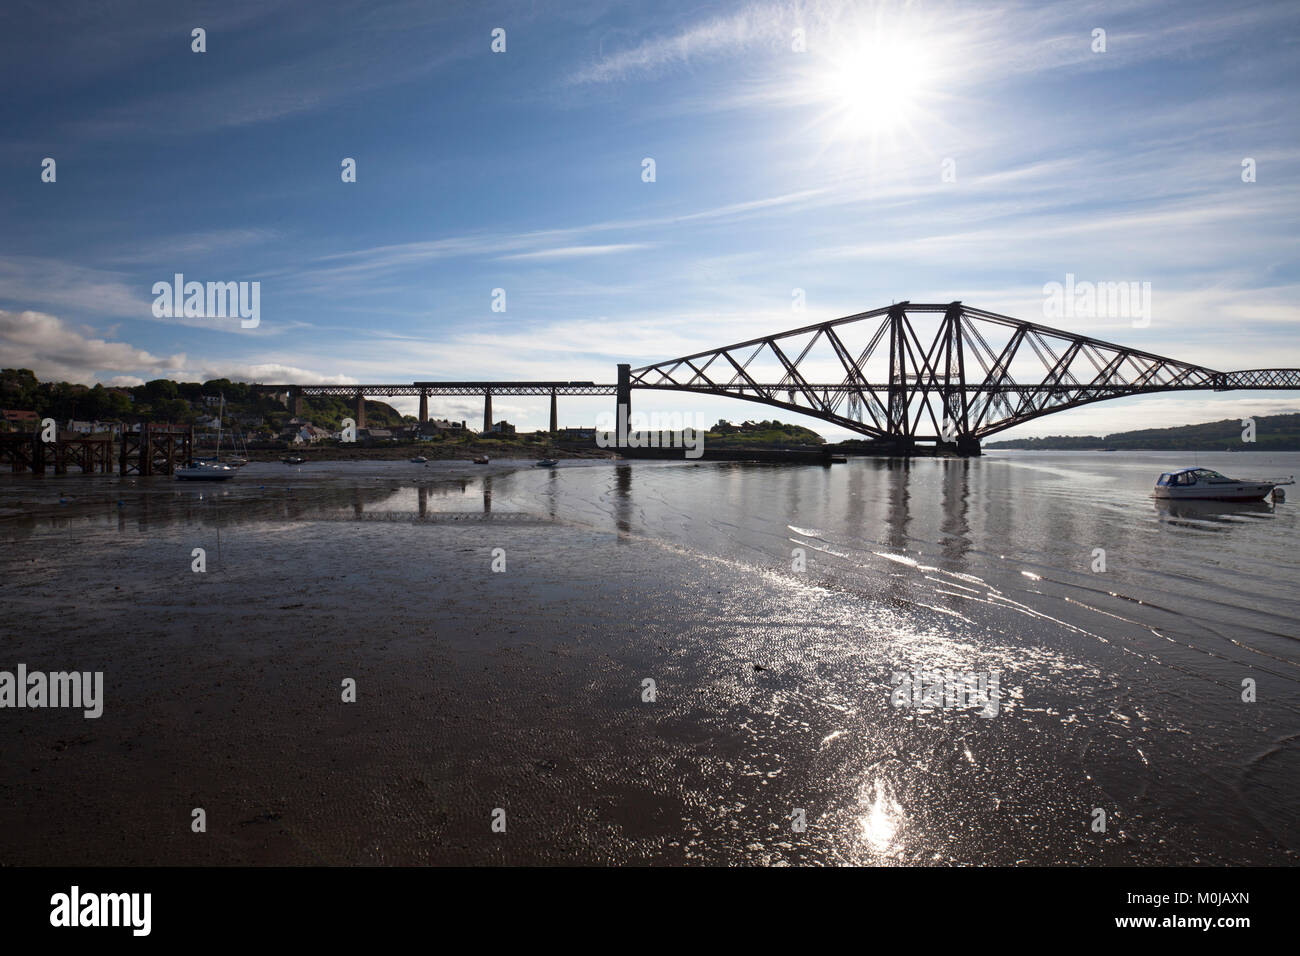 03/06/2016 North Queensferry, The Forth Bridge (Fife) a class 68 locomotive crosses with a Scotrail train. - Stock Image